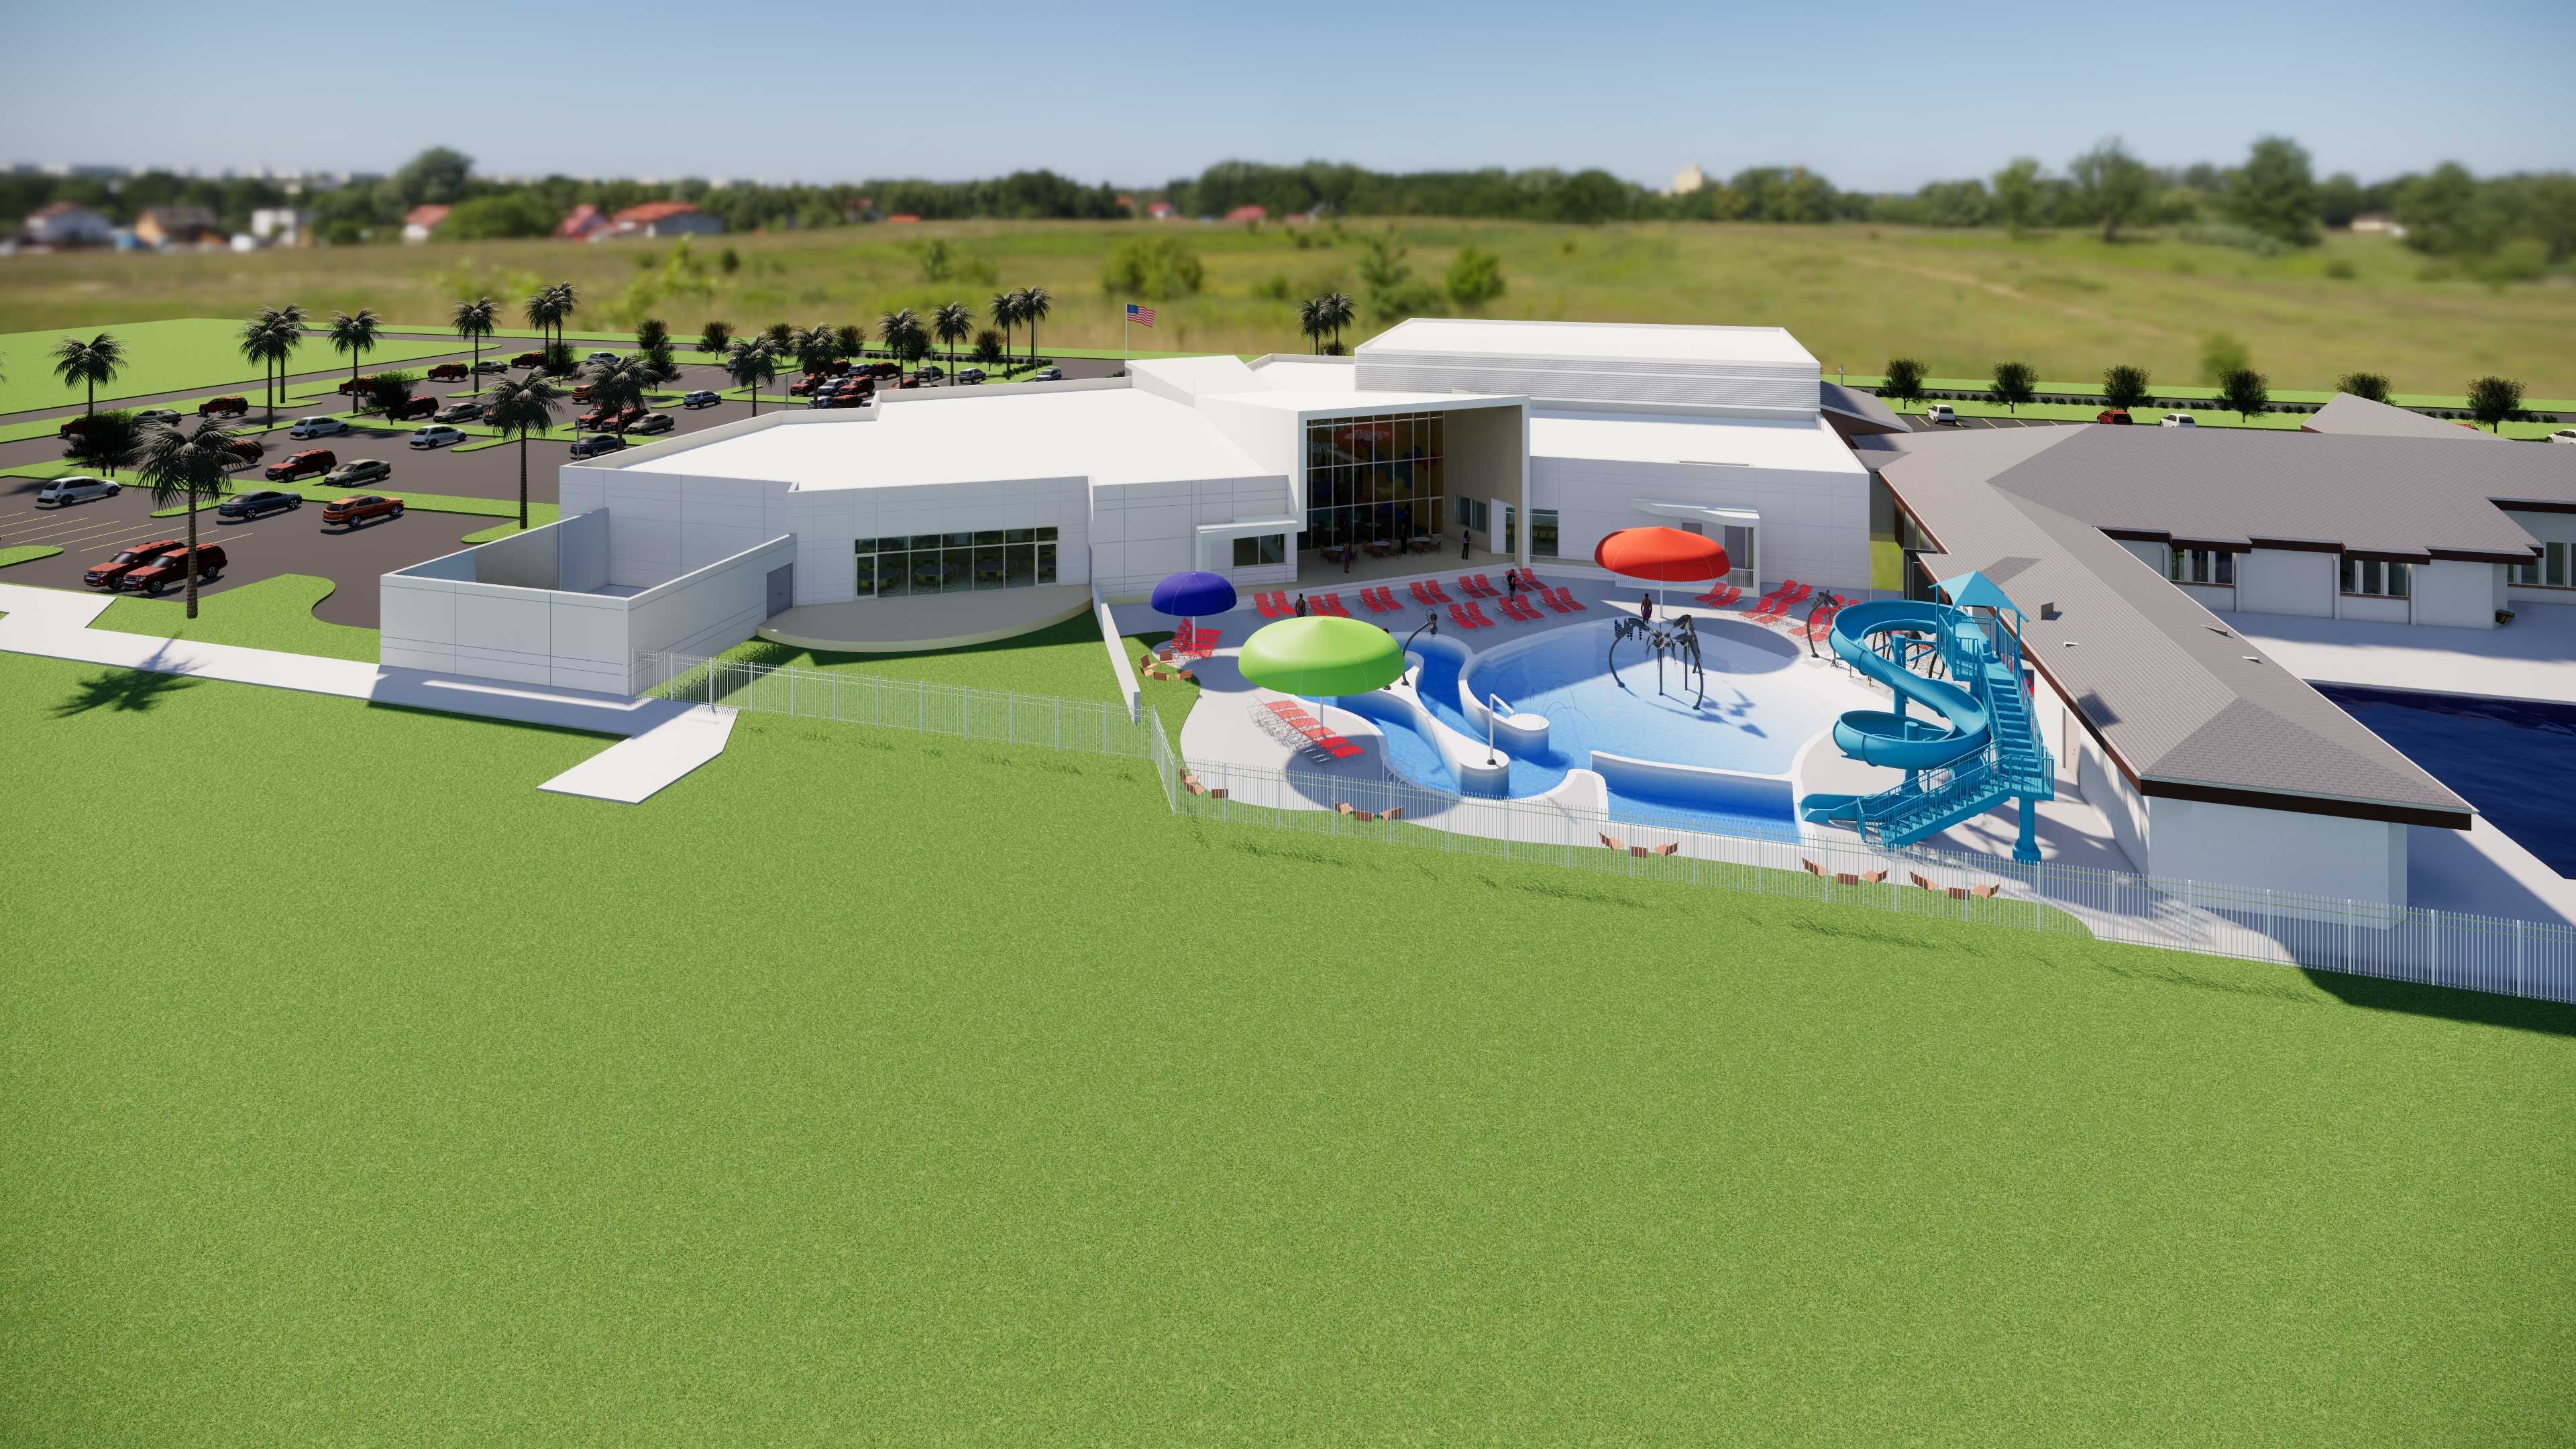 Dr. Ann Murphy Night STARS Complex Expansion Exterior Aerial view of pool